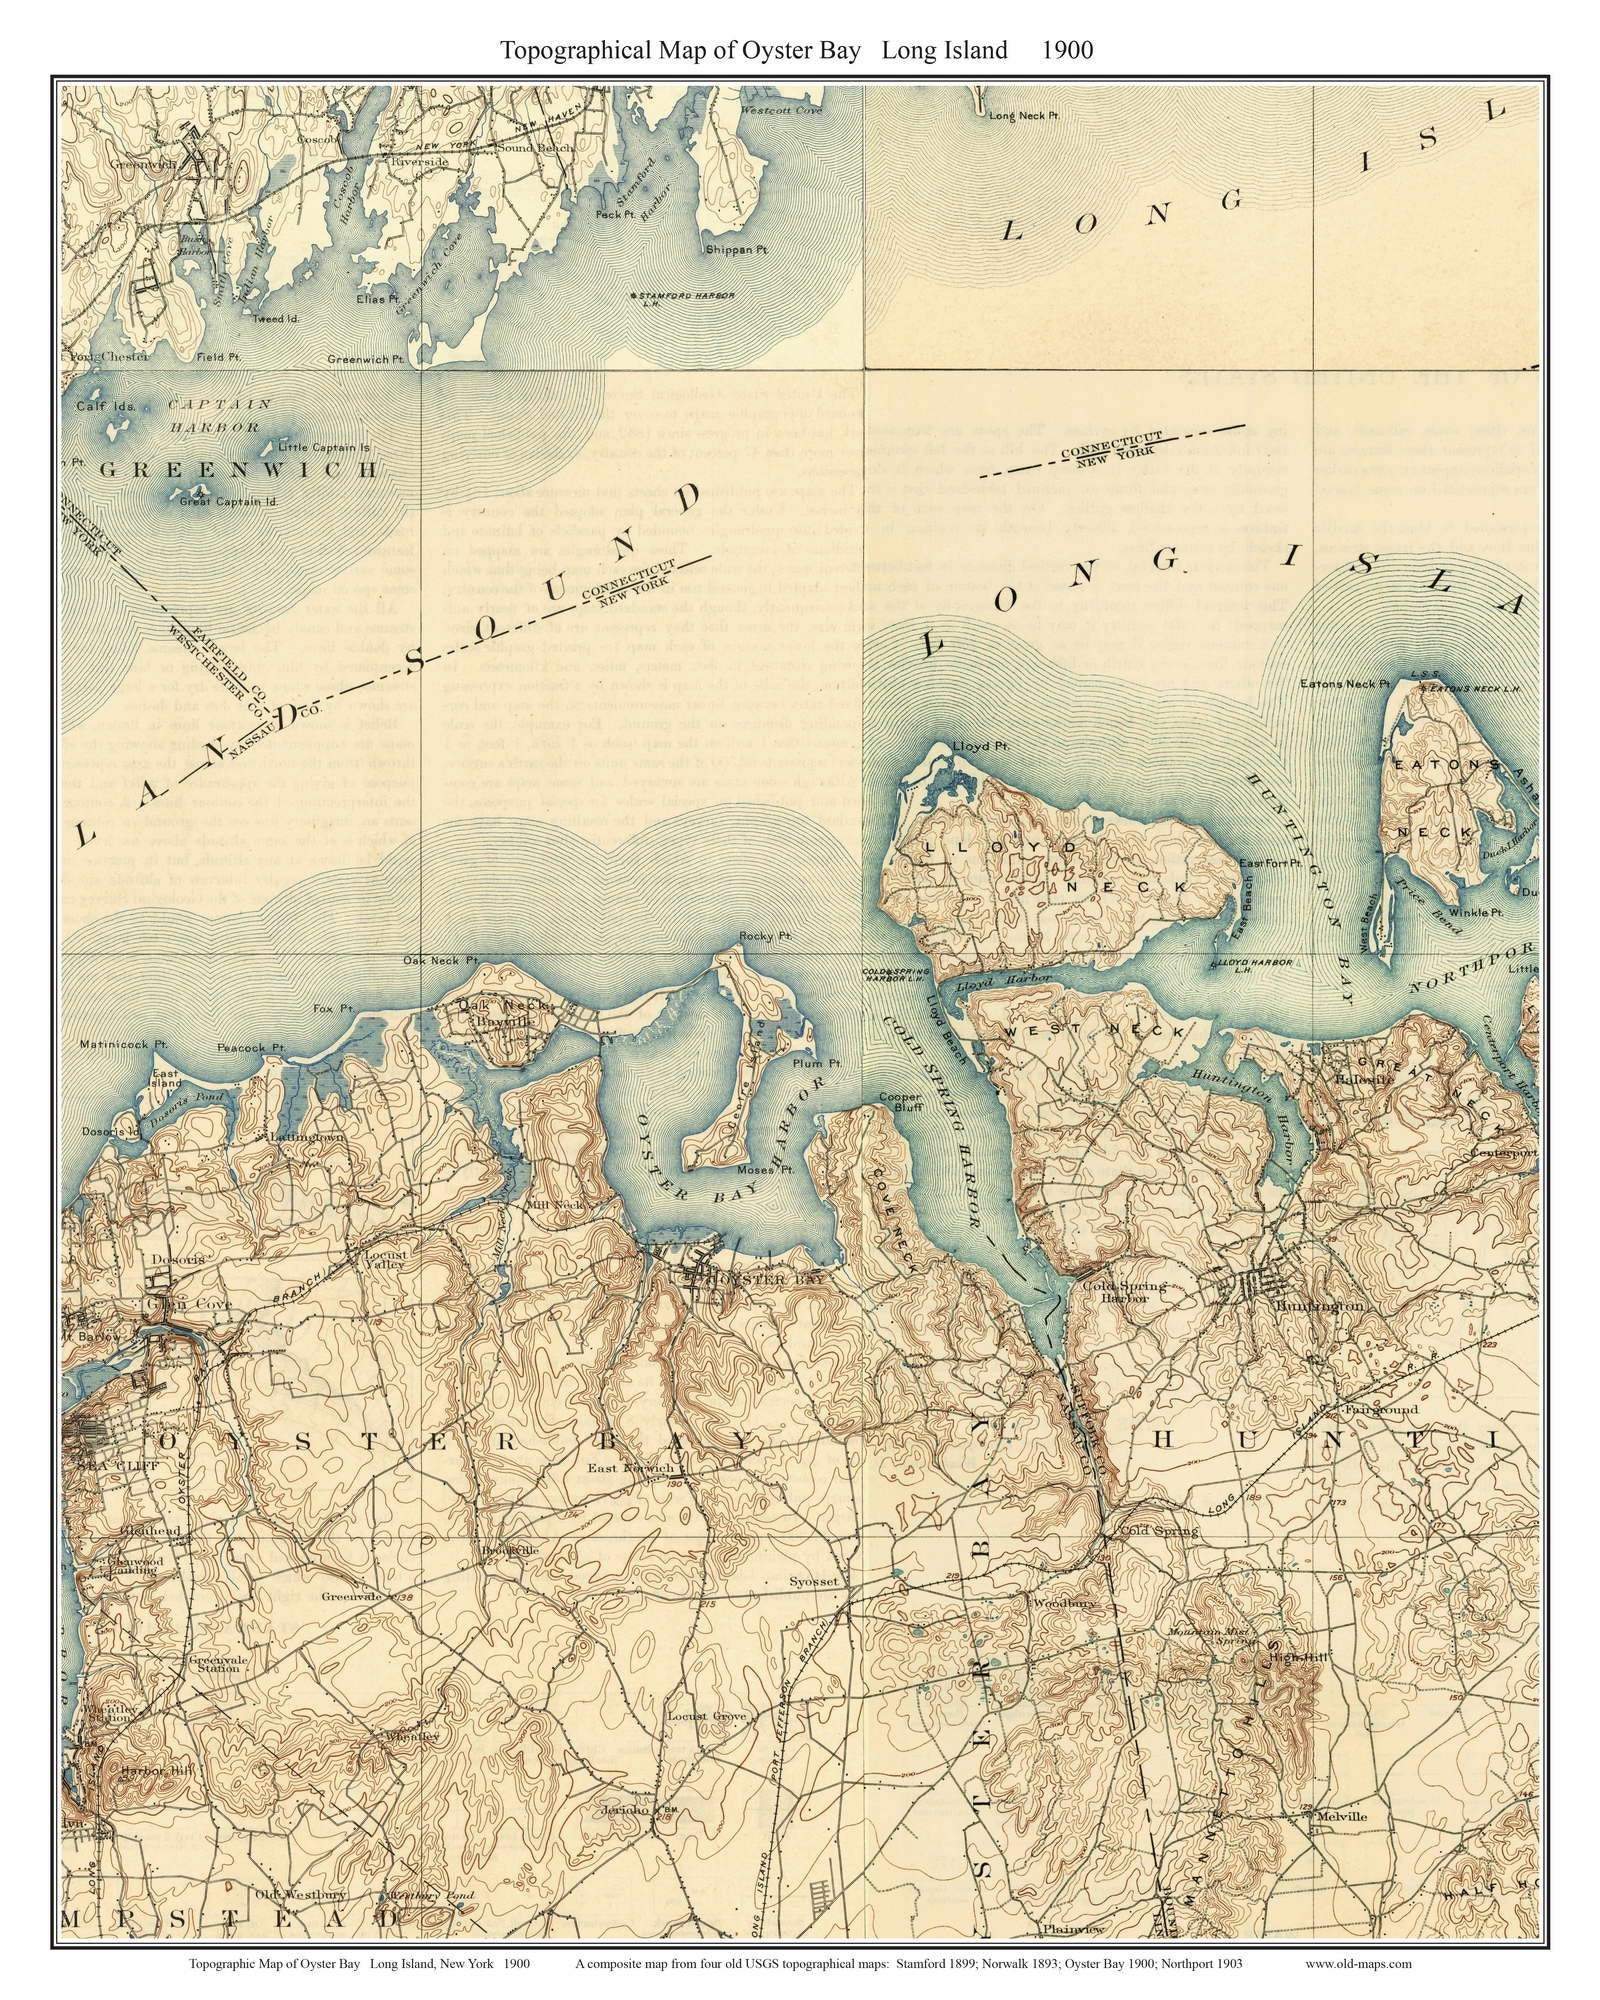 Oyster Bay 1900 Long Island New York Old USGS Topo Map